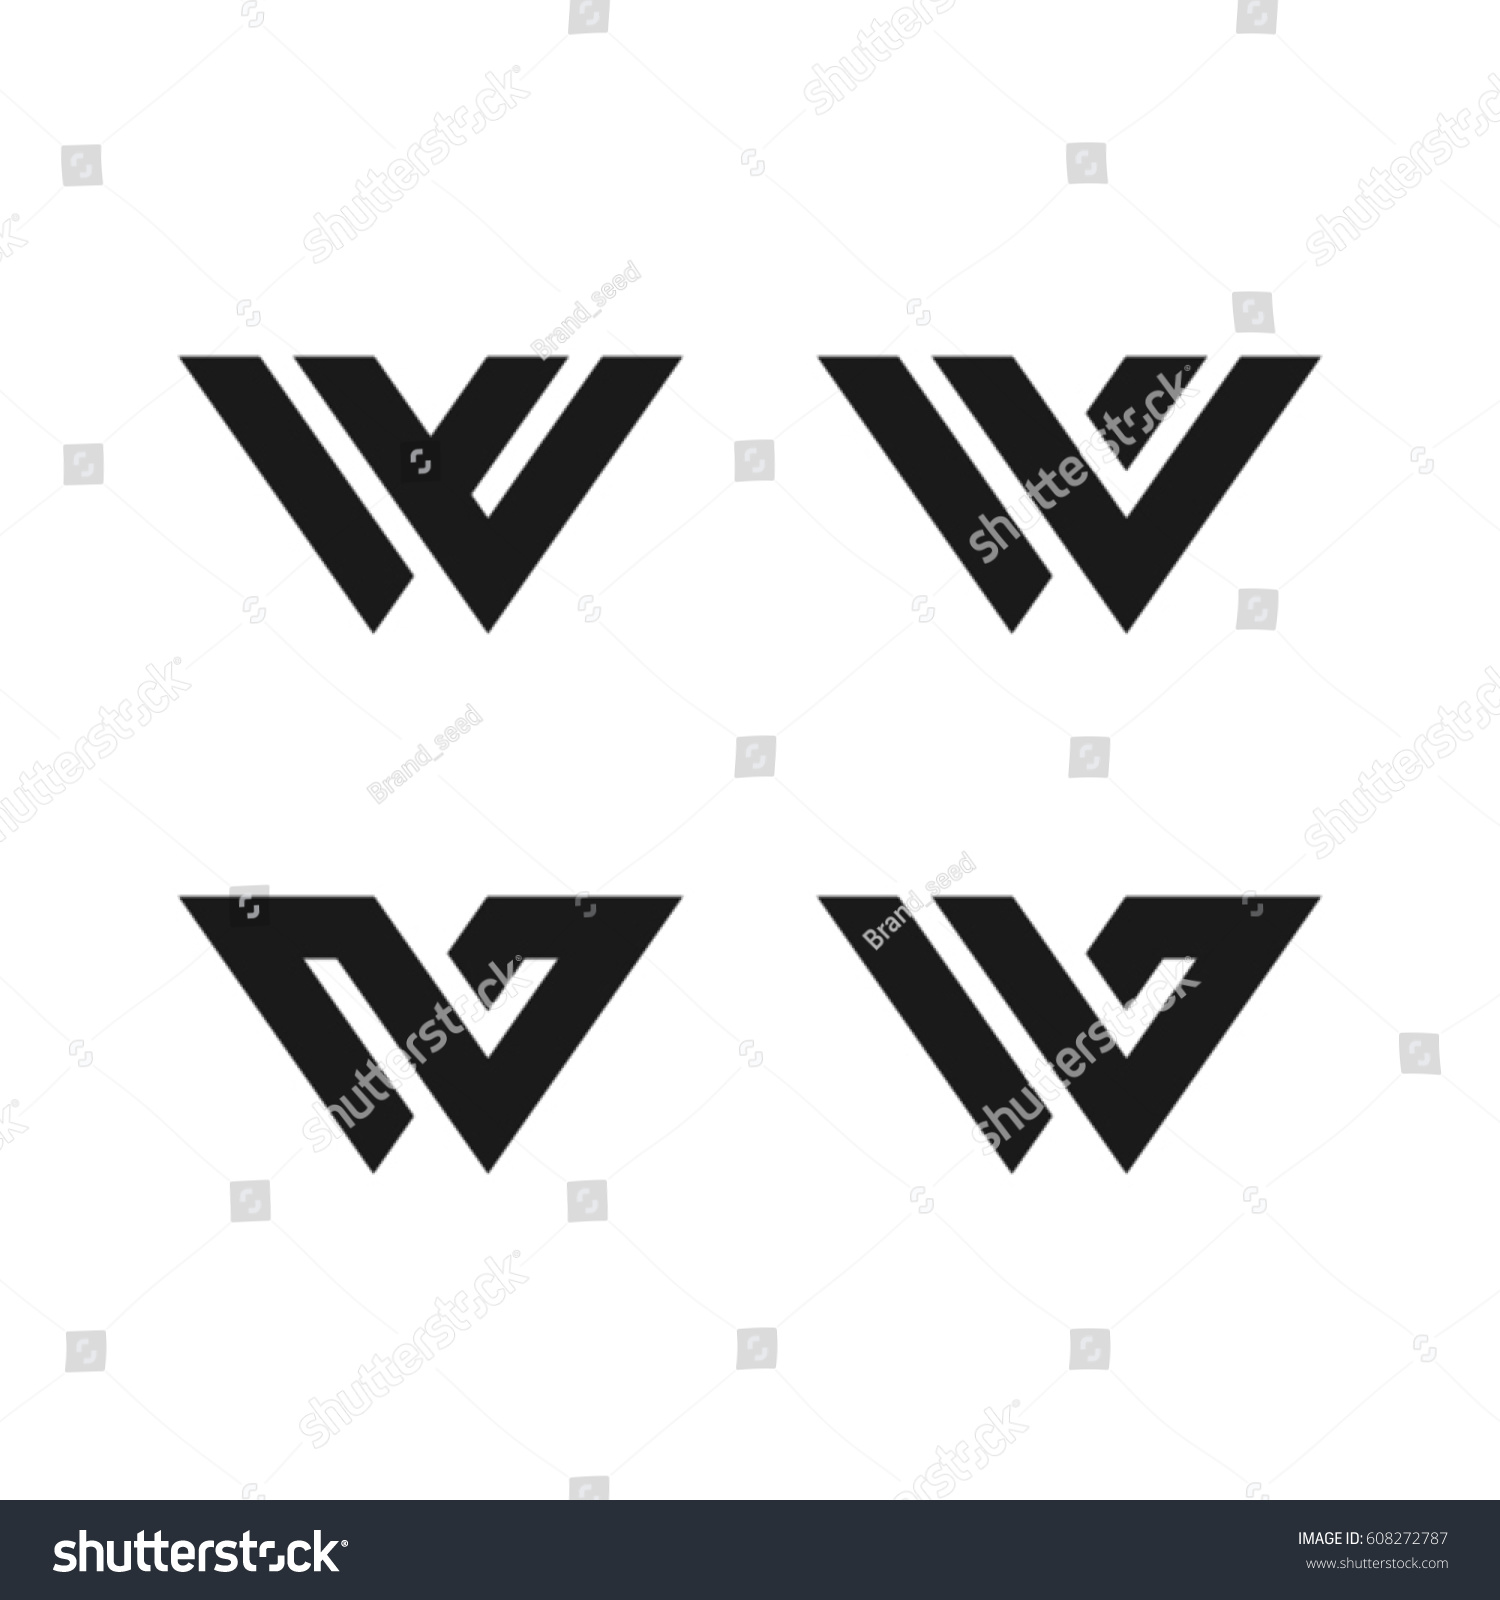 w symbol w letter character typeface のベクター画像素材